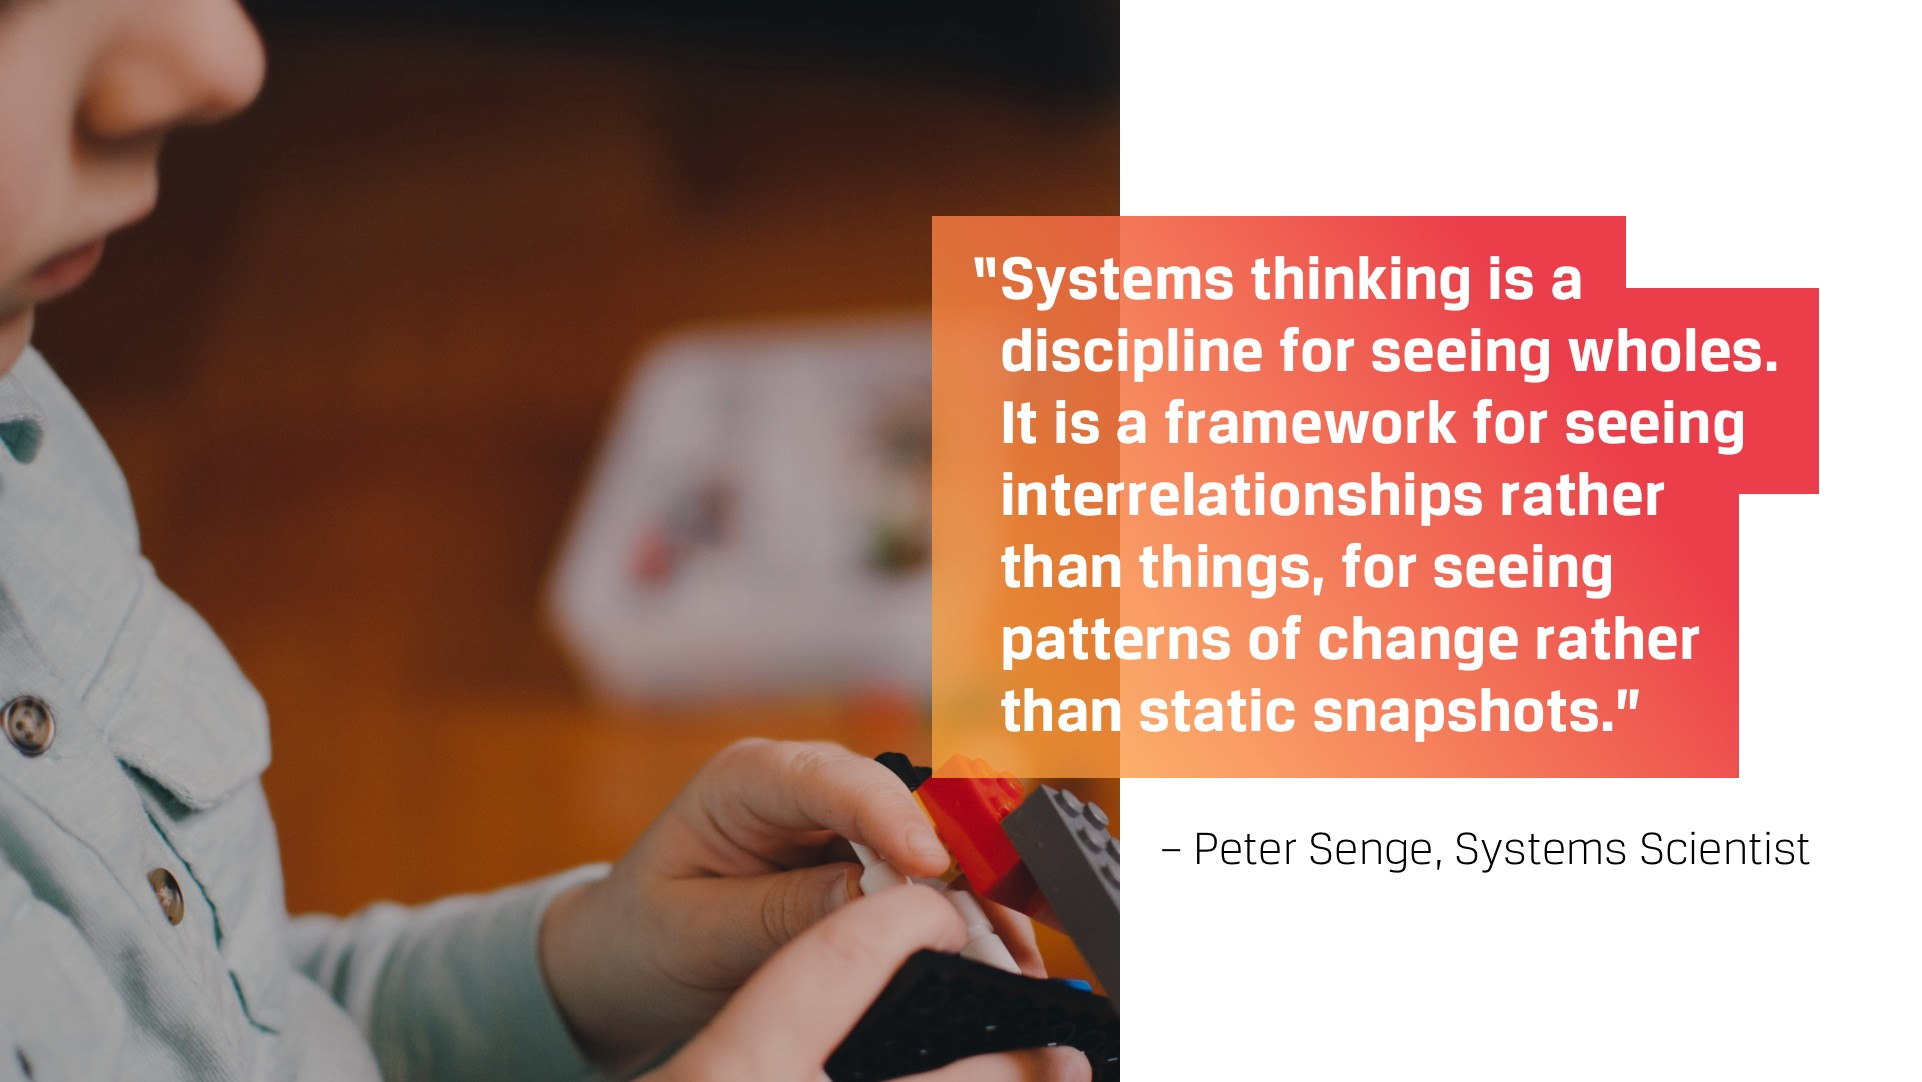 Systems thinking is a discipline for seeing wholes … for seeing interrelationships rather than things. — Peter Senge